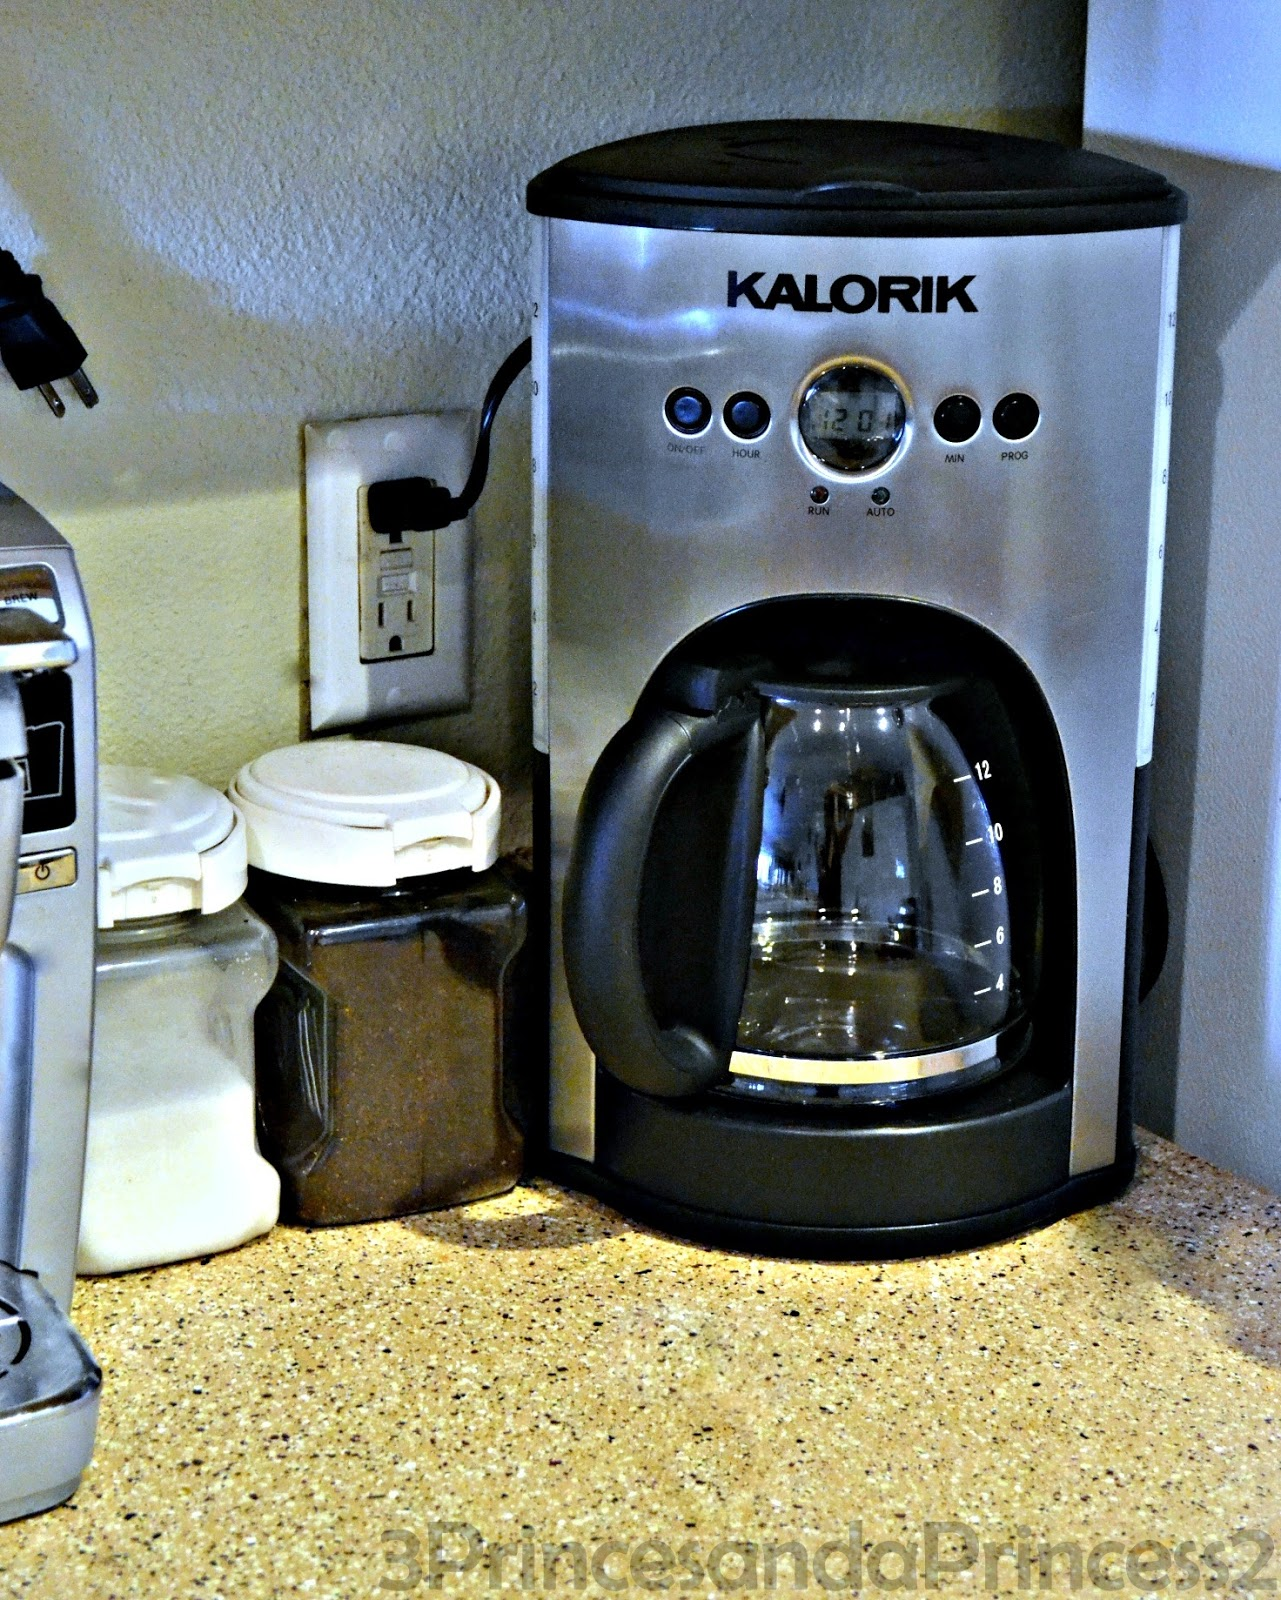 Princess One Cup Coffee Maker Review : 3 Princes And A Princess 2: Kitchen Must Haves - Kalorik Coffee Maker (Review & Give Away)